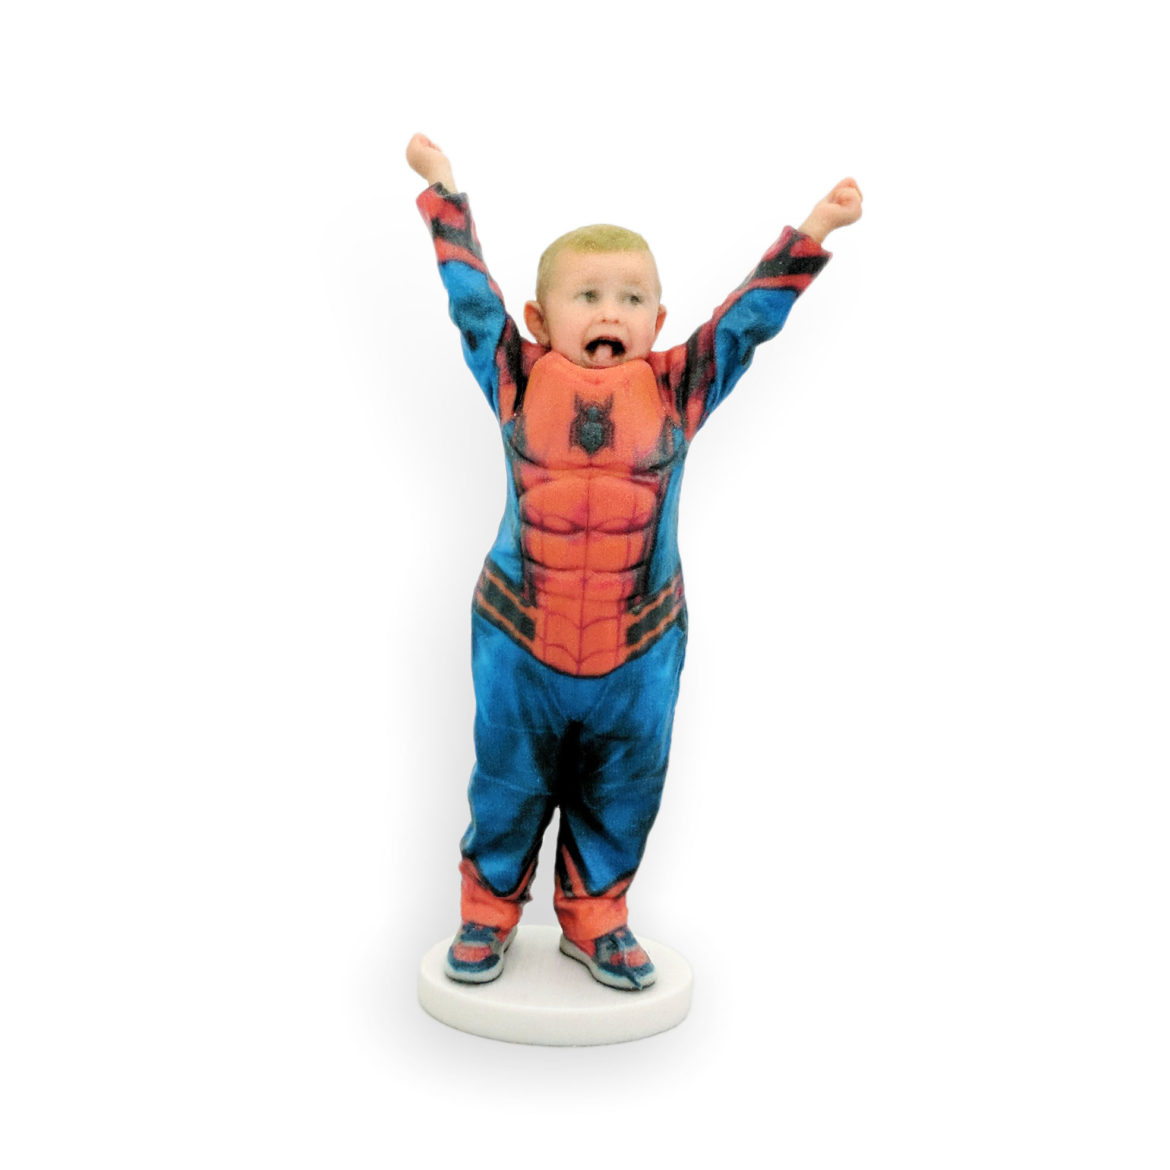 my3Dtwin, Personalised Custom Figurine of a SpiderMan